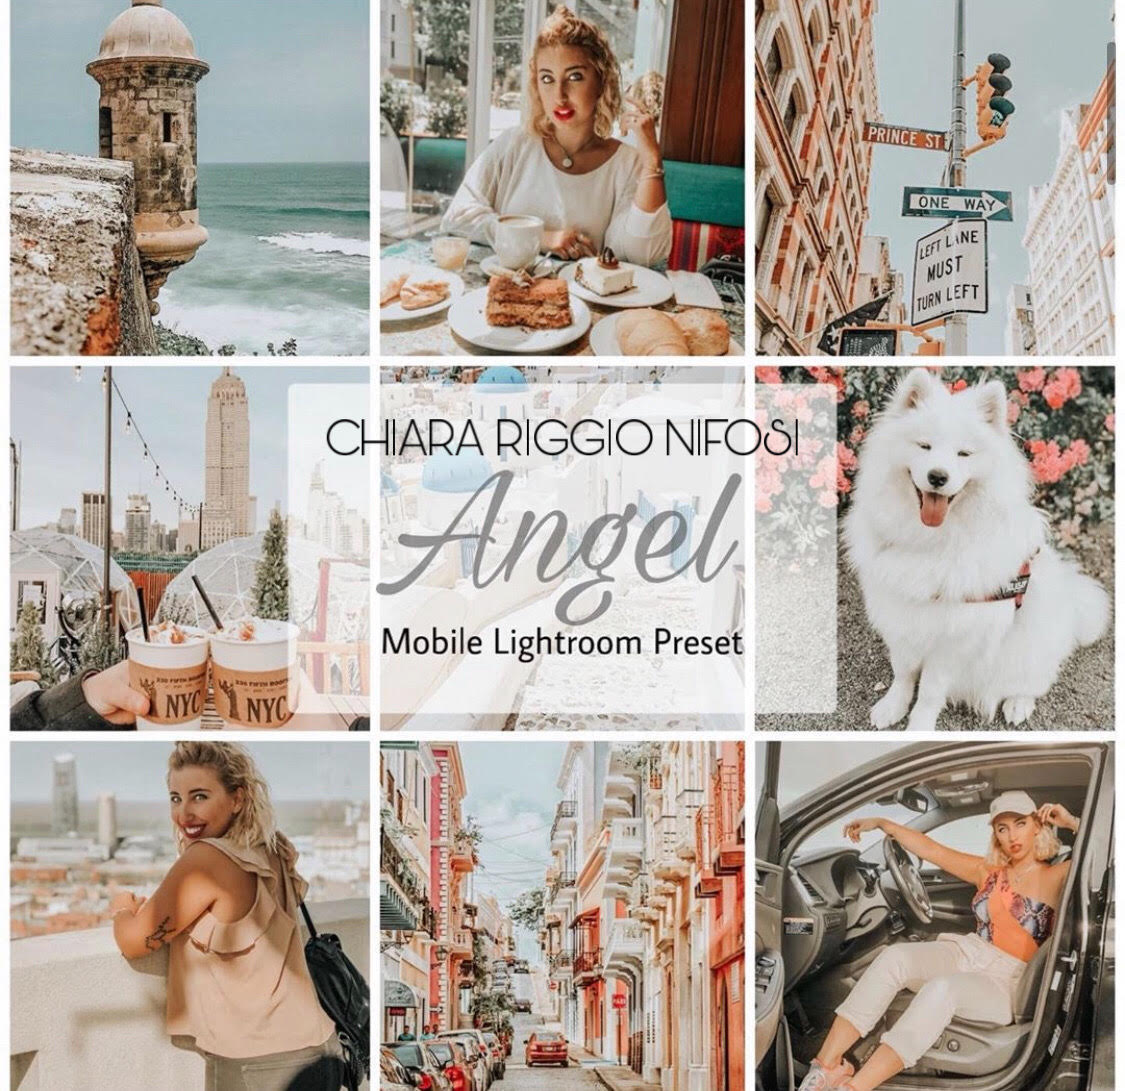 Lucky Angel Mobile Lightroom Preset